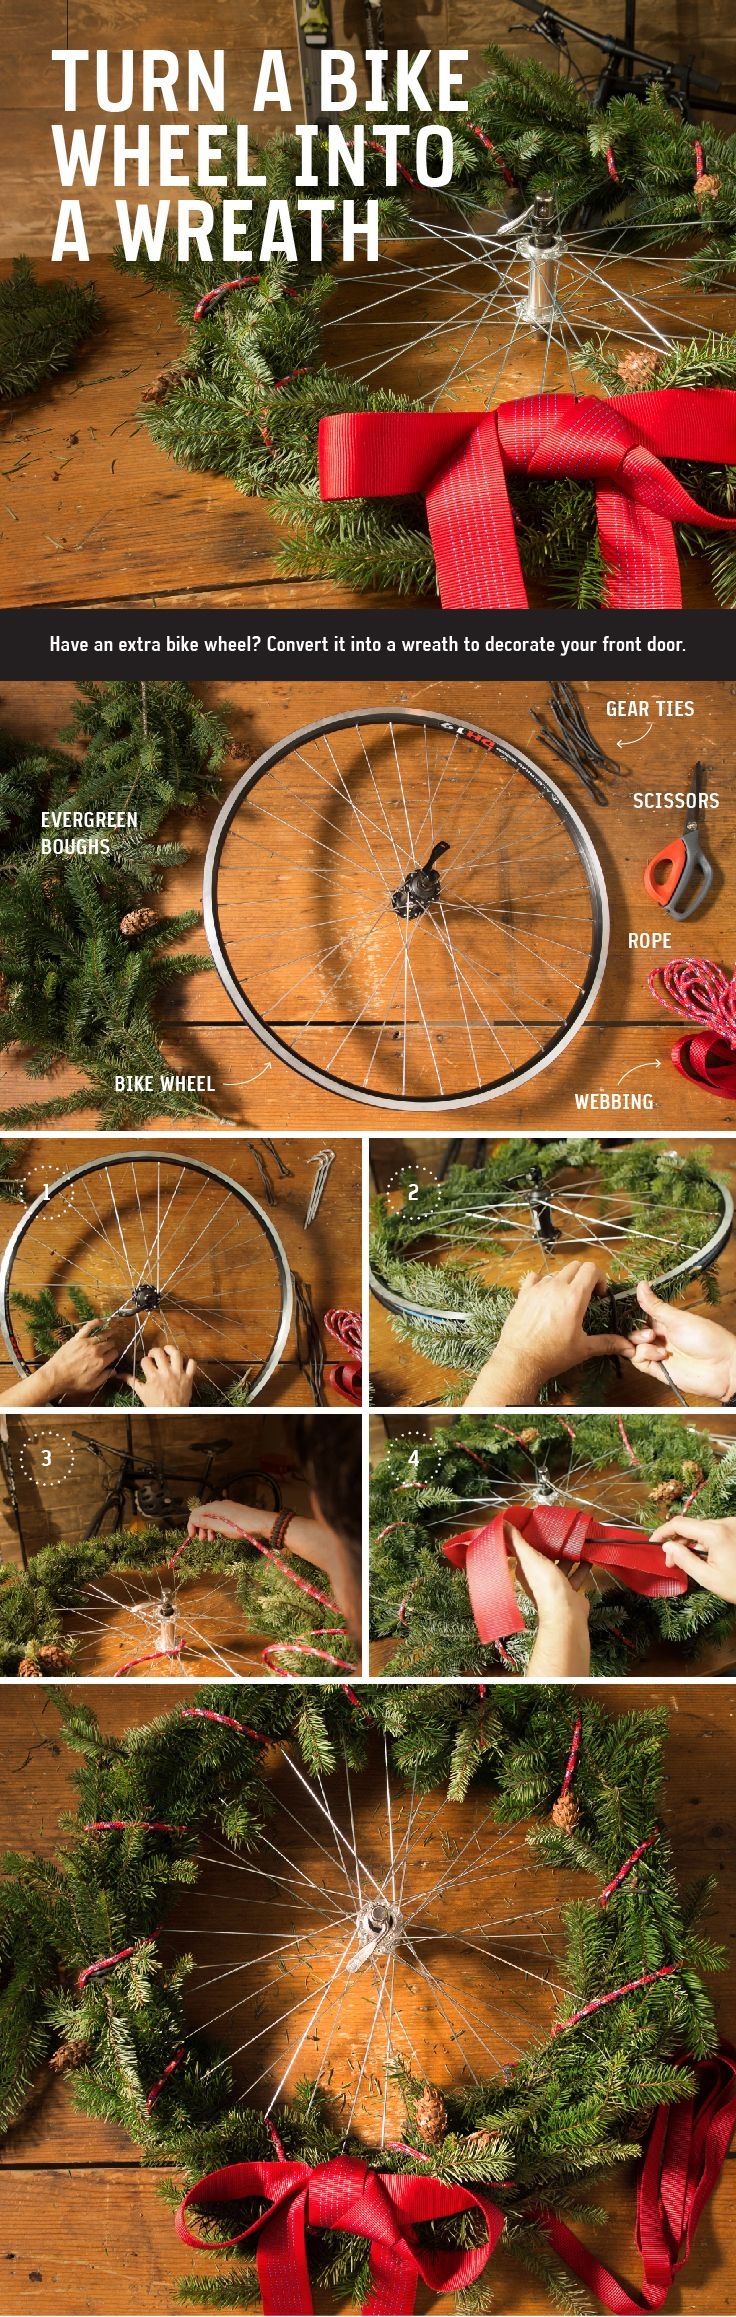 Holiday Hack: Turn a Bike Wheel Into a Wreath